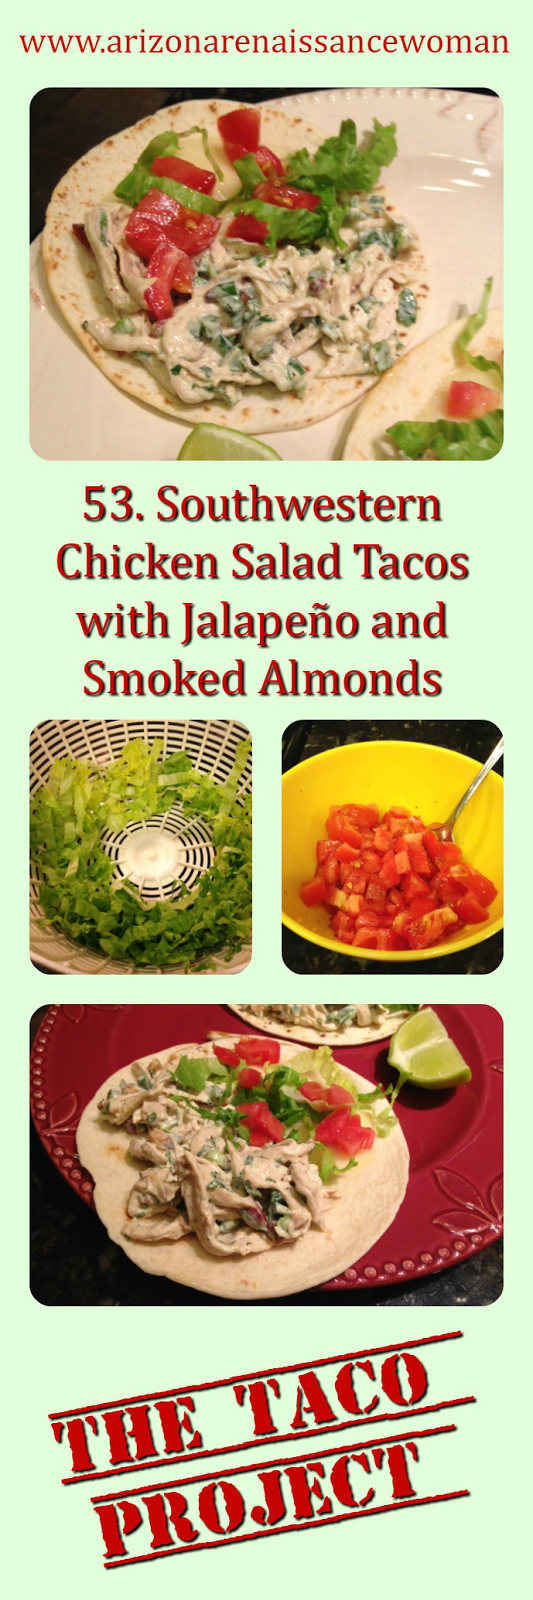 53. Southwestern Chicken Salad Tacos with Jalapeño and Smoked Almonds Collage